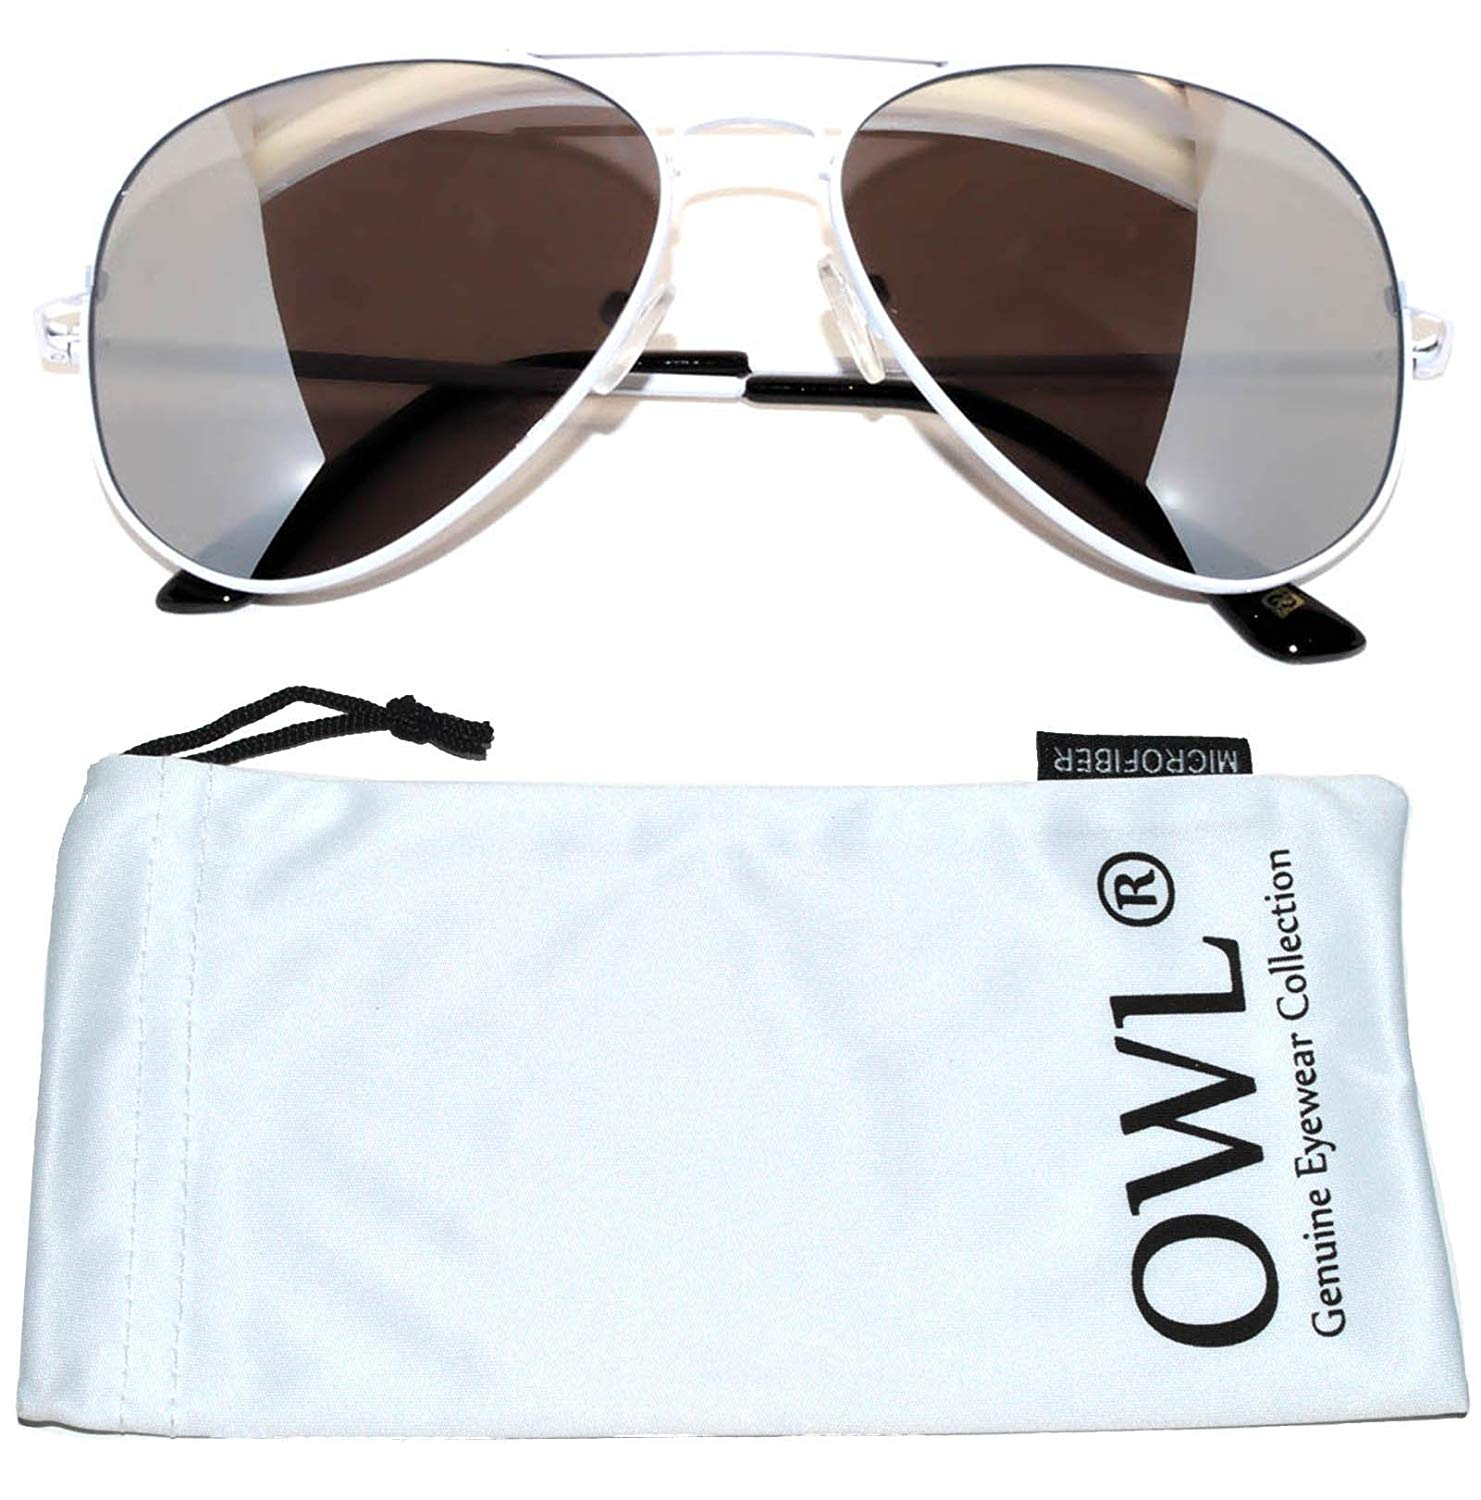 59d21ba9a04 Get Quotations · Classic Aviator Sunglasses Silver Mirrored Lens White Frame  Spring Hinge OWL